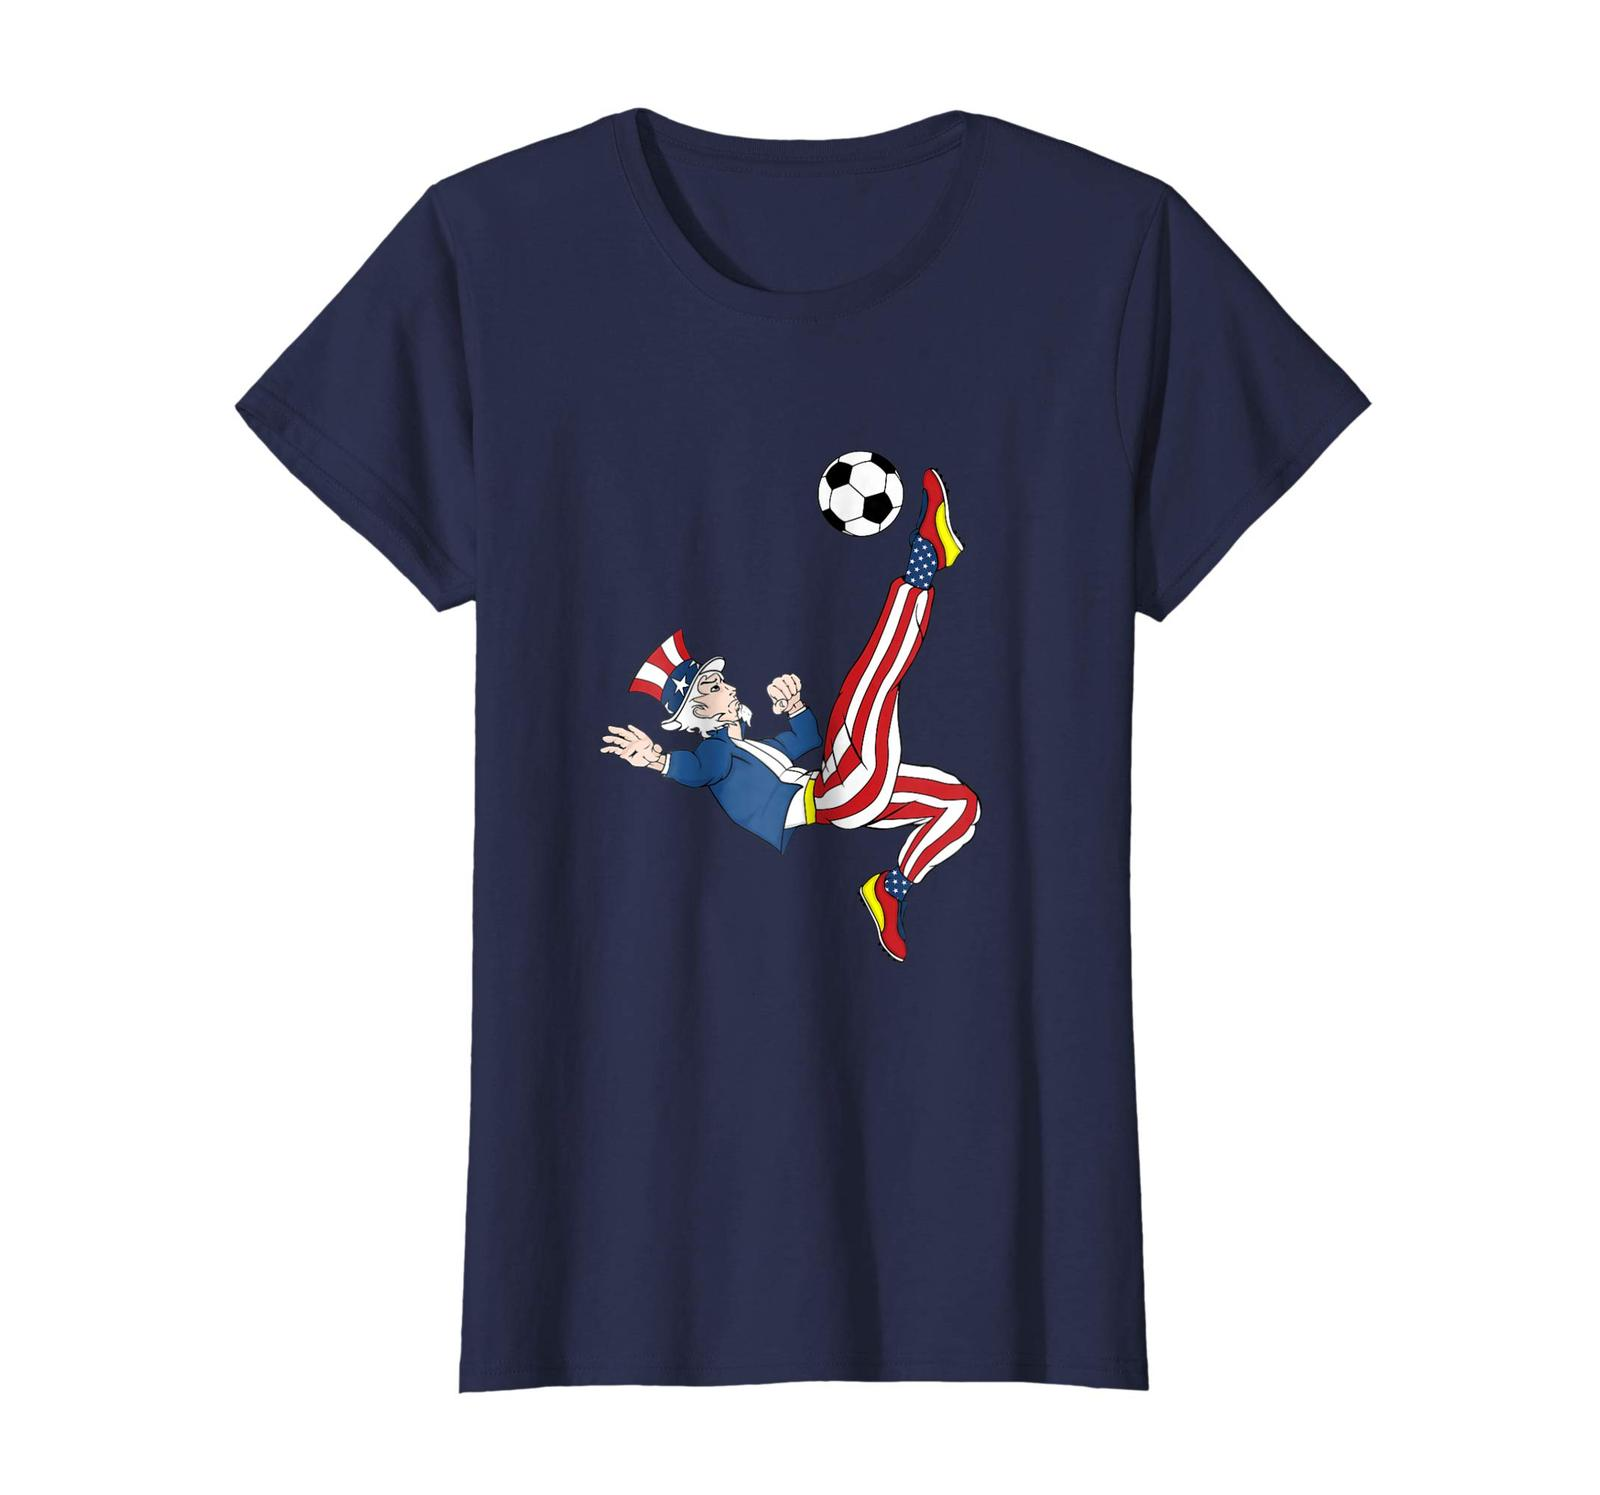 New Shirts - Uncle Sam Soccer American Flag T-Shirt Patriotic Merica Wowen